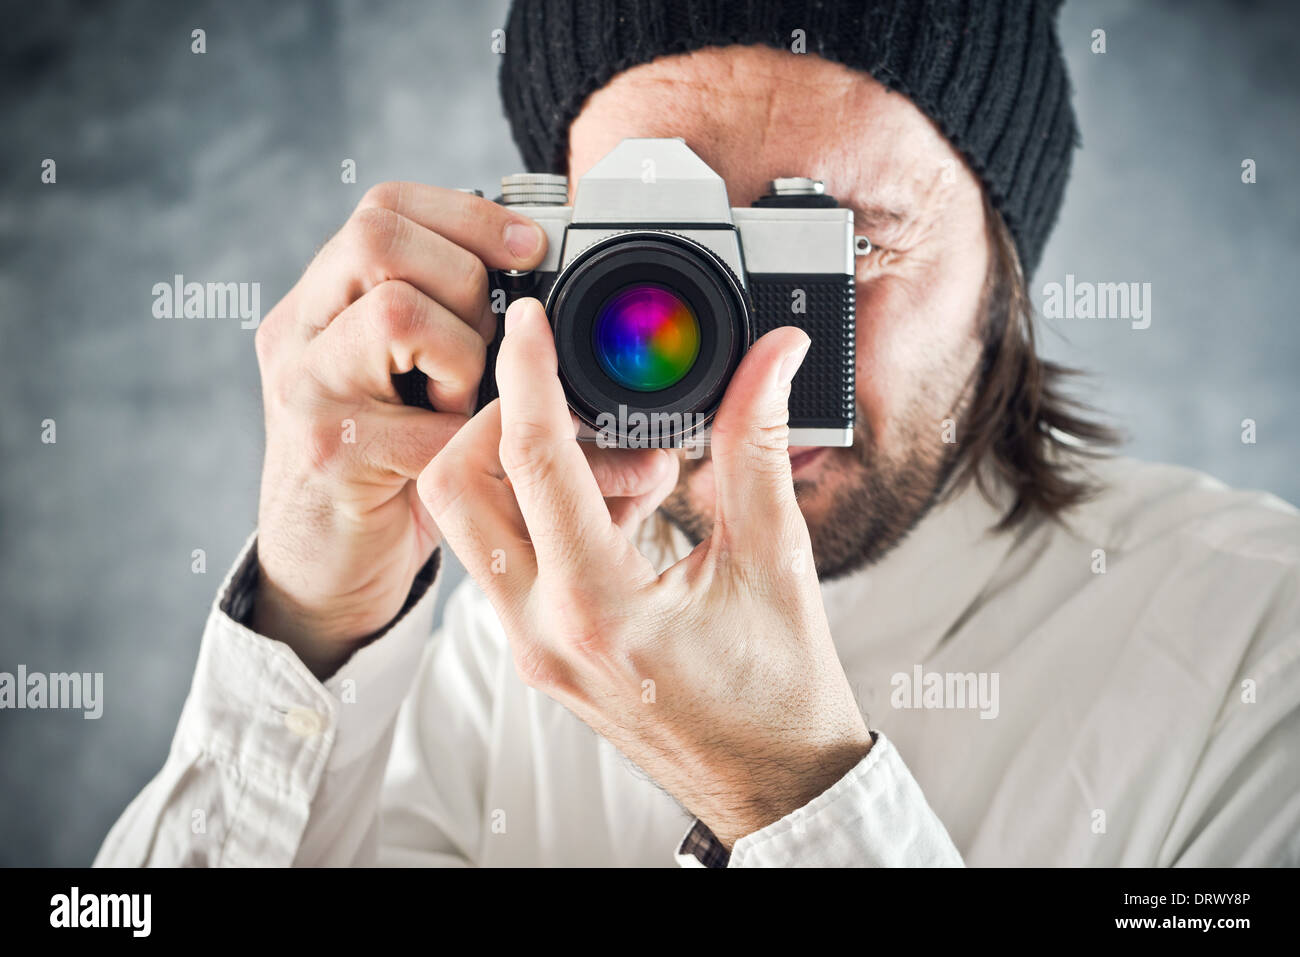 Businessman taking picture with old vintage film photo camera - Stock Image